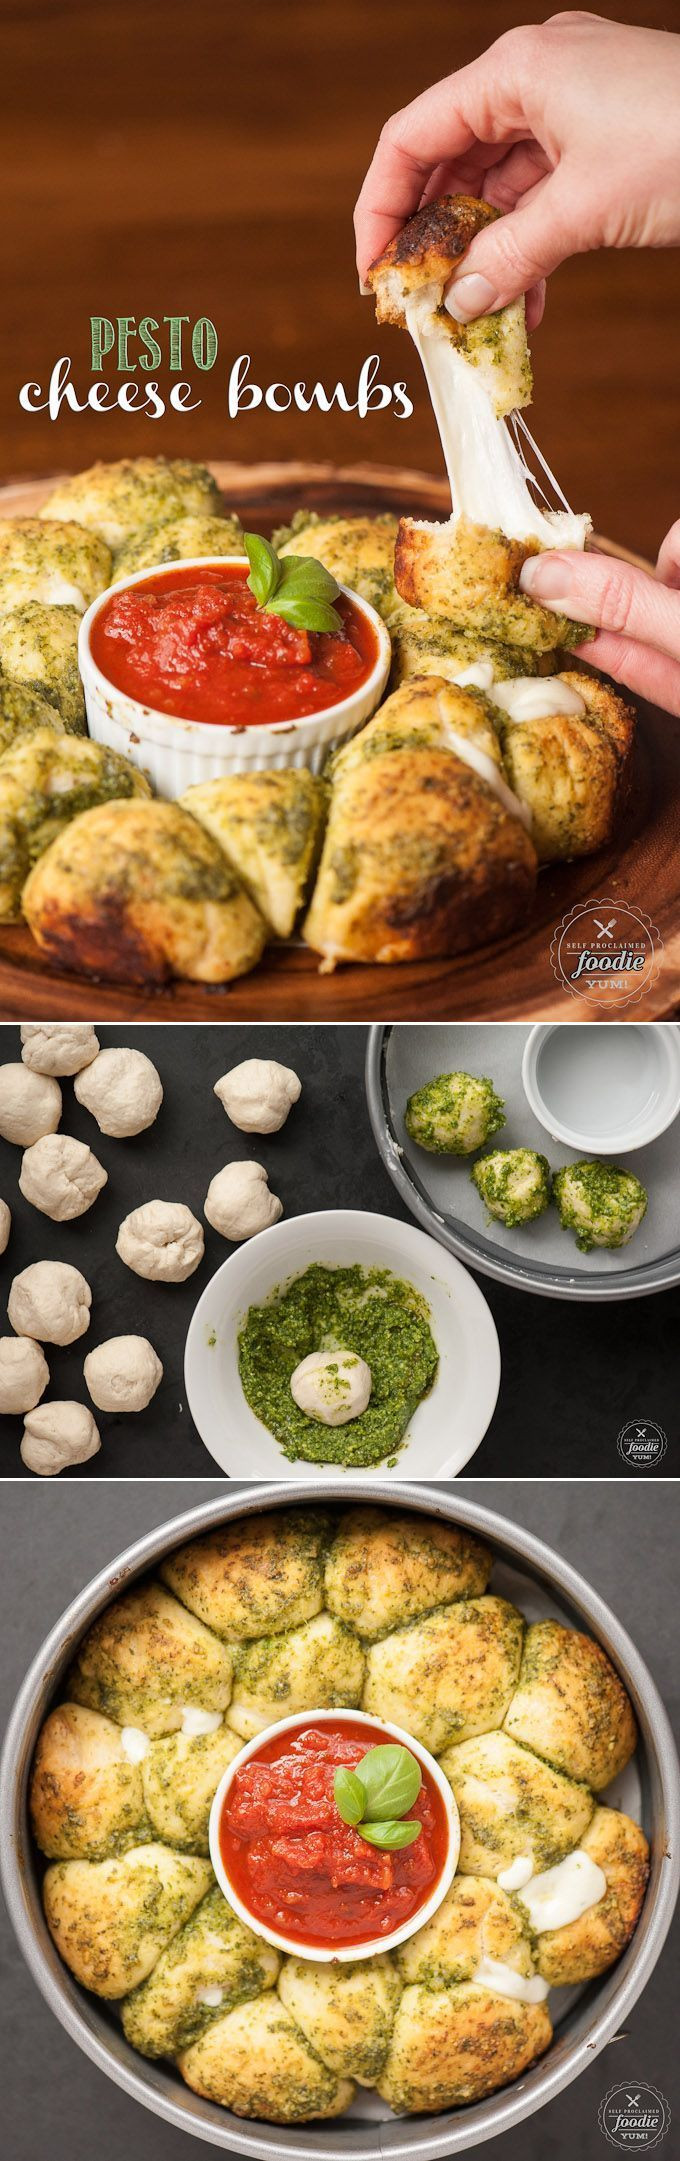 Easy Christmas Appetizers For A Crowd  1000 ideas about Easy Christmas Appetizers on Pinterest